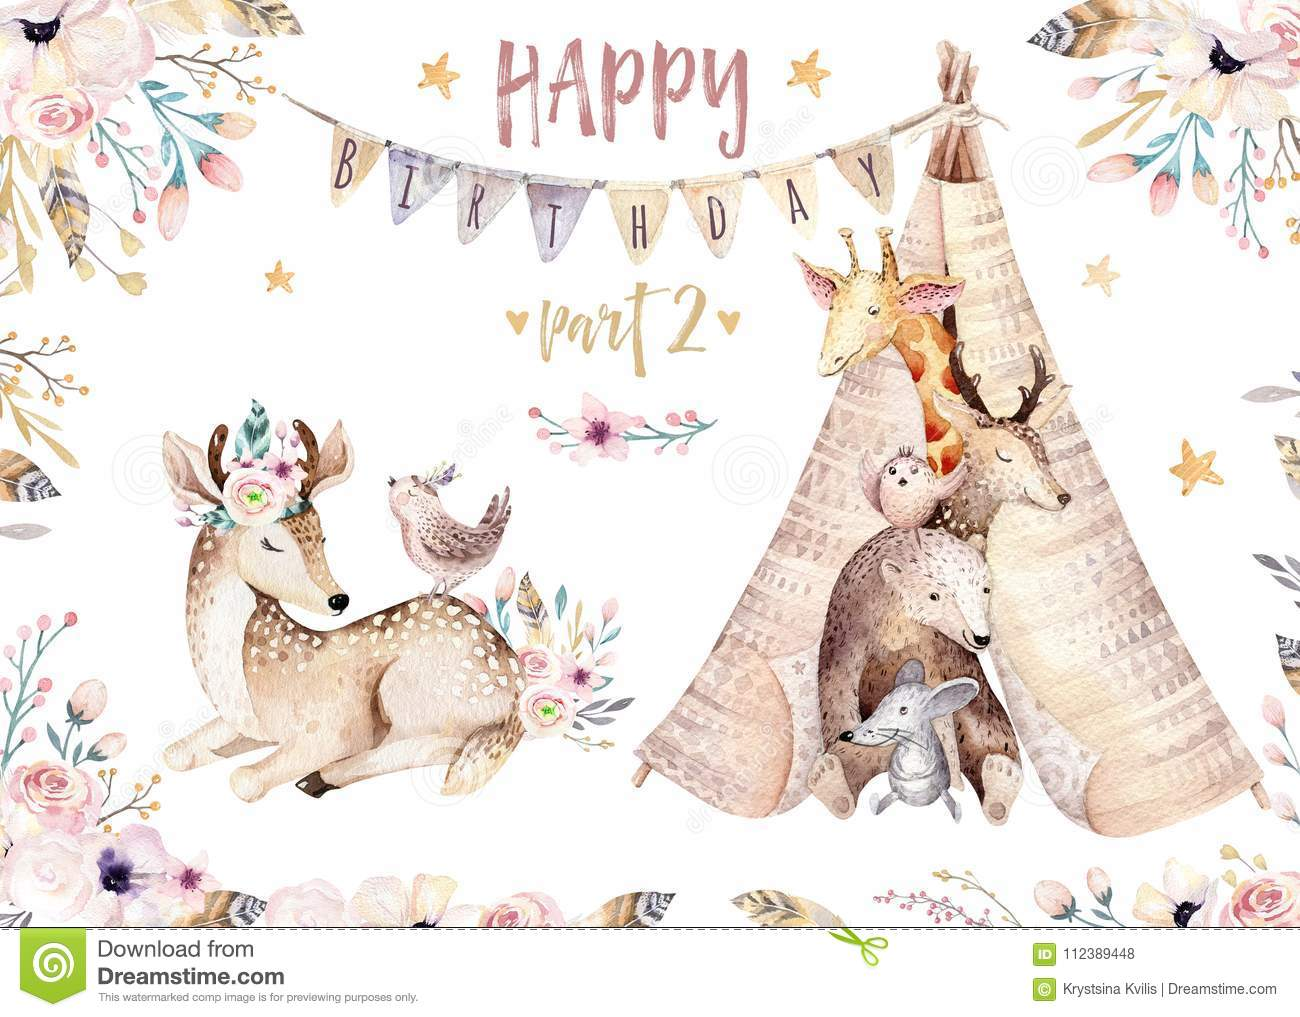 Cute baby giraffe, deer animal nursery mouse and bear isolated illustration for children. Watercolor boho forest cartoon